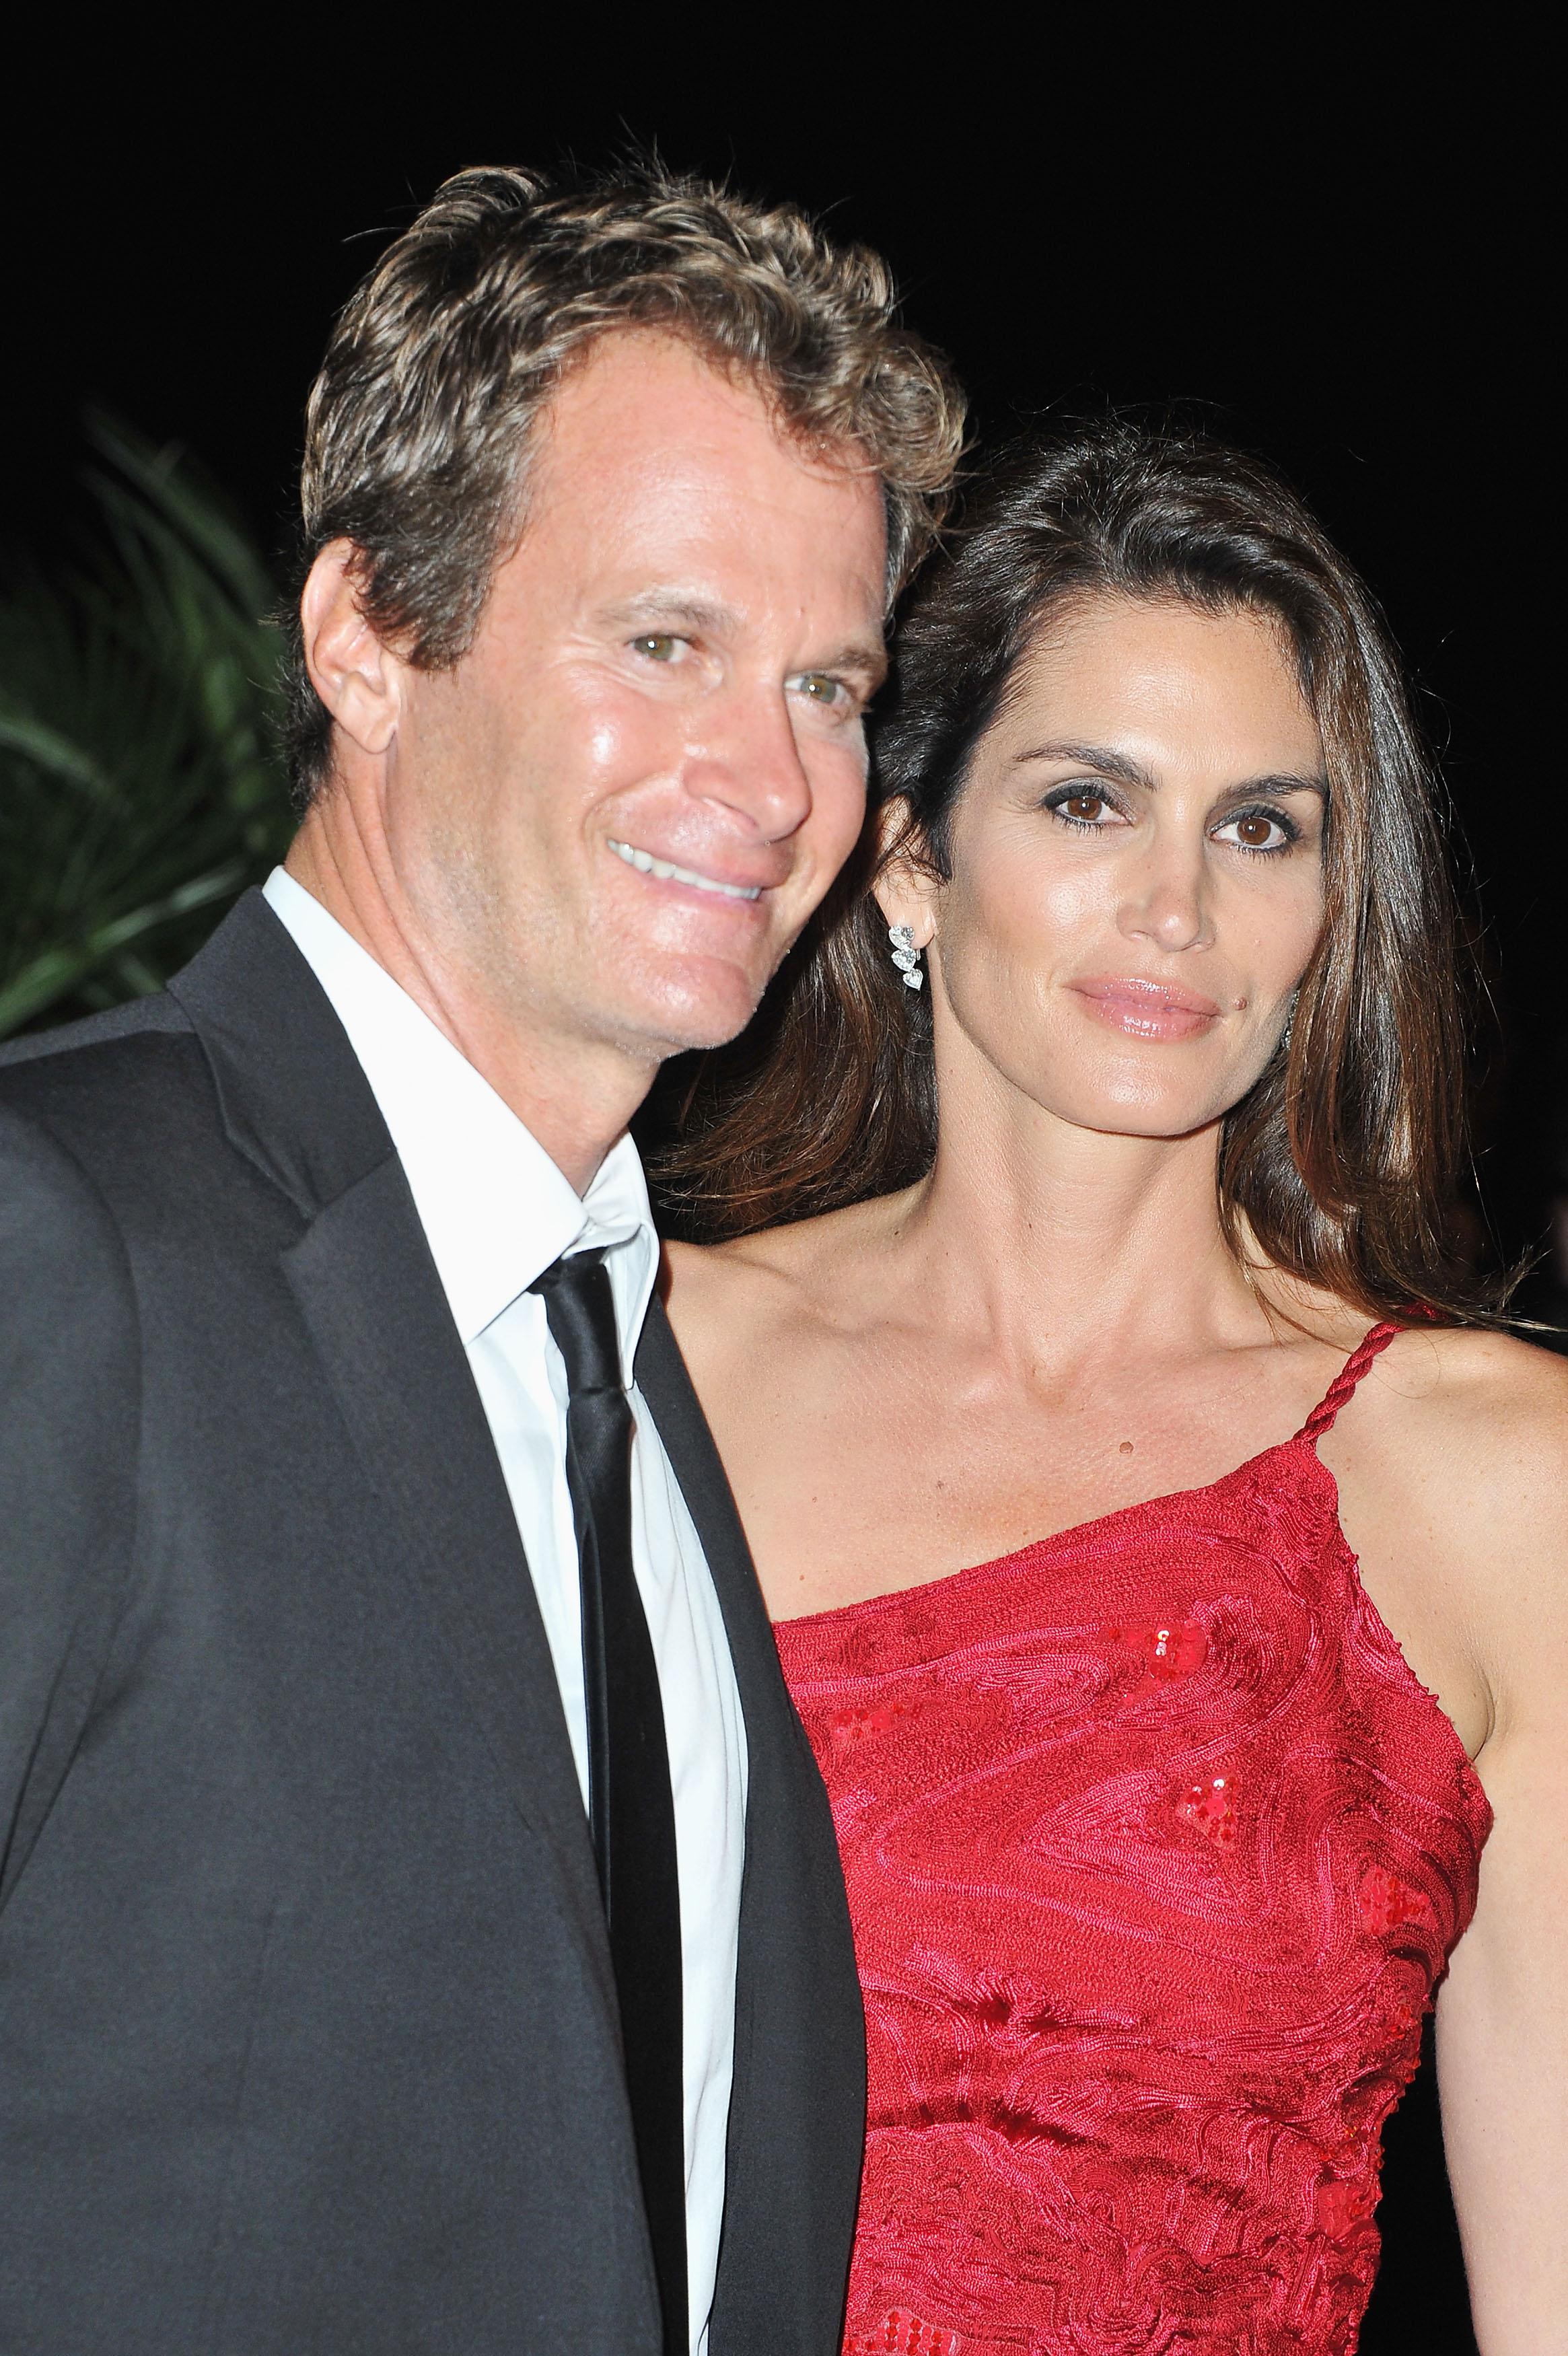 Rande Gerber and Cindy Crawford at the Venice Film Festival opening dinner.